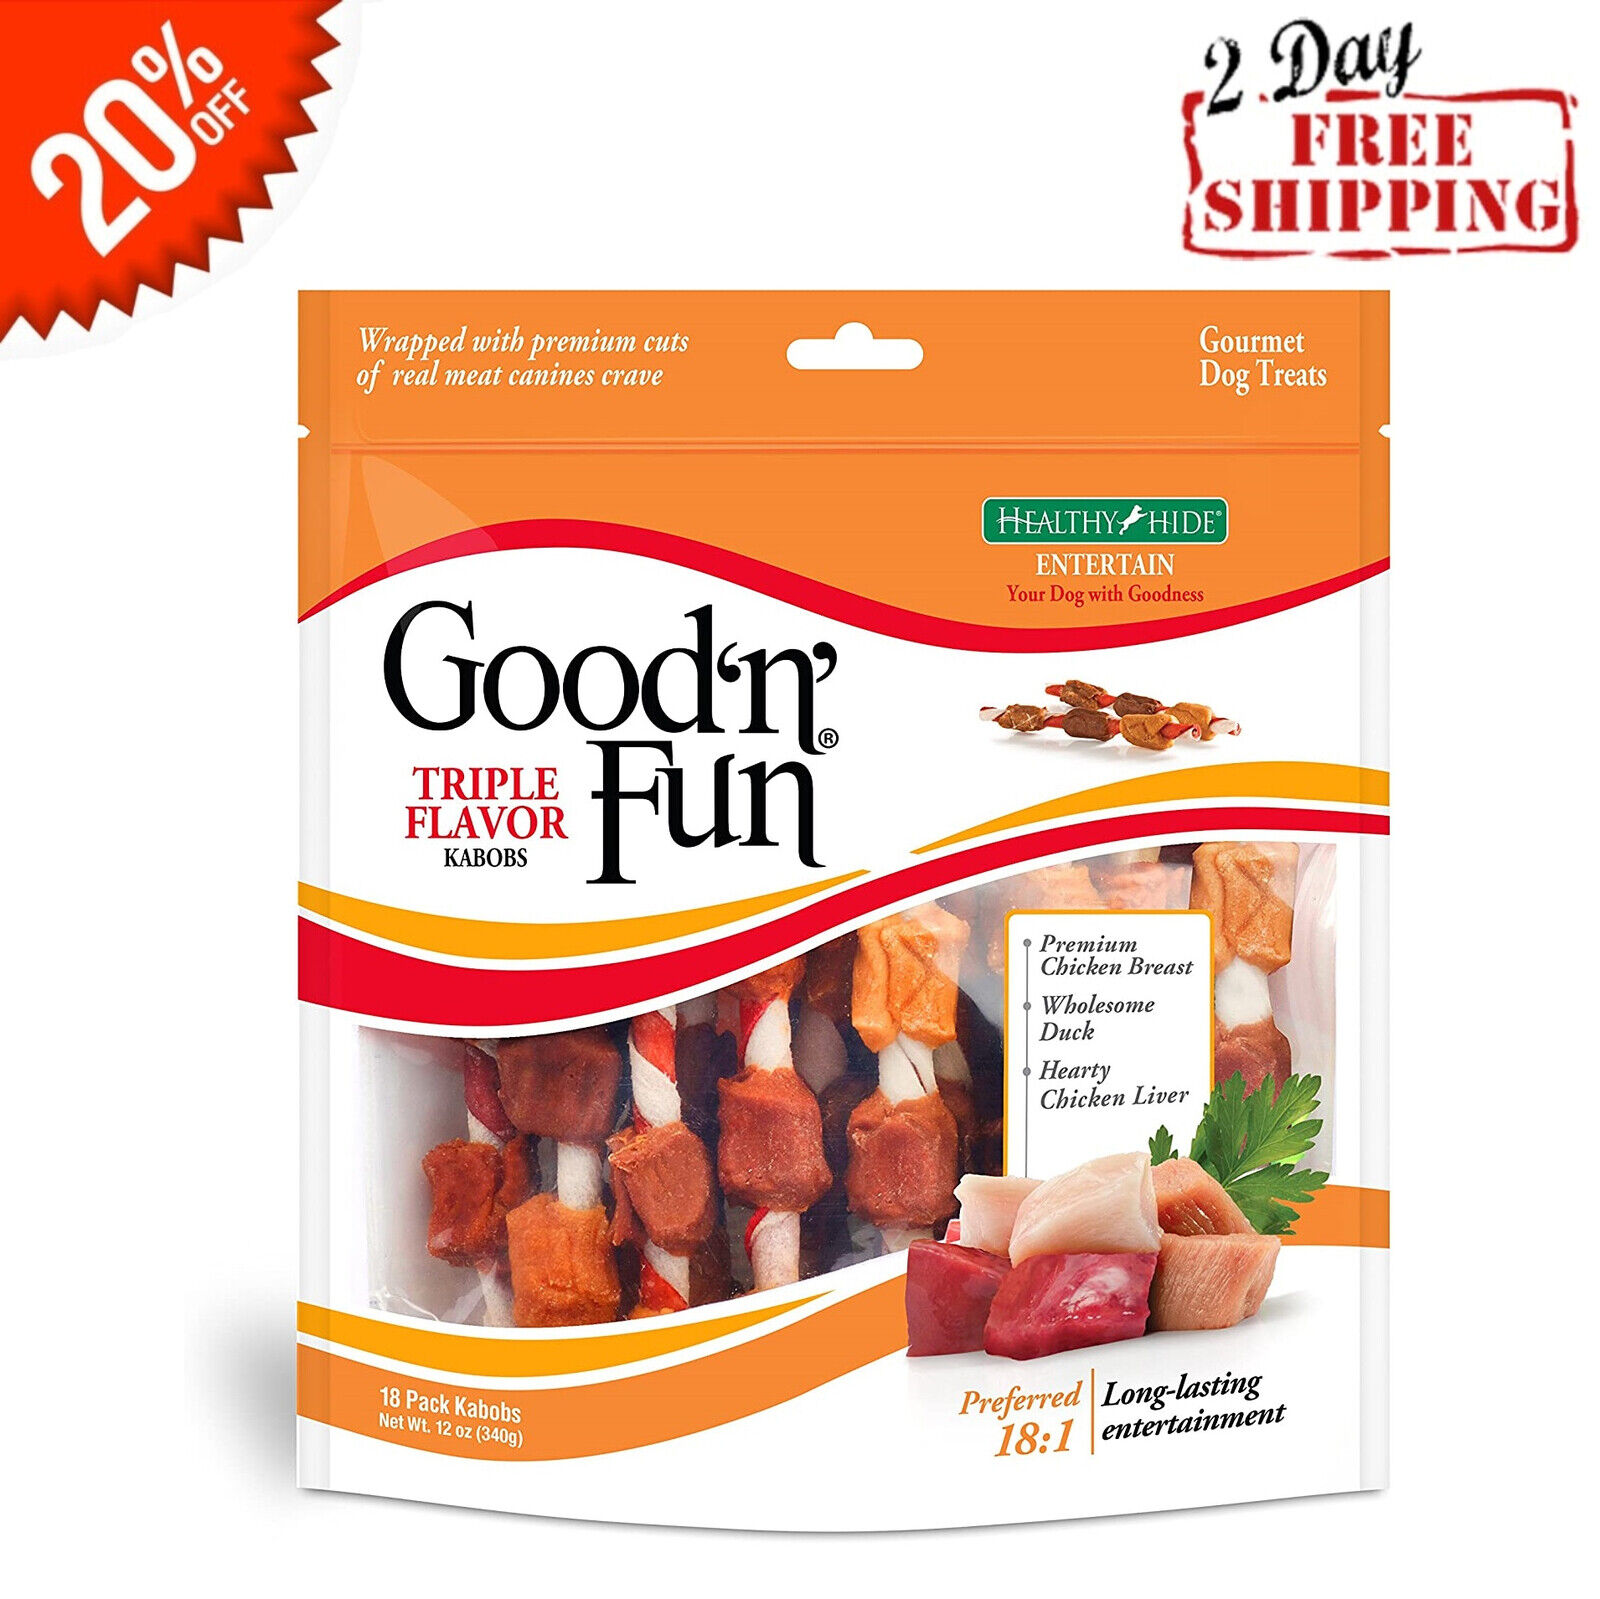 Dog Treats TRIPLE FLAVOR KABOBS 18 Pack Healthy Gourmet Chic